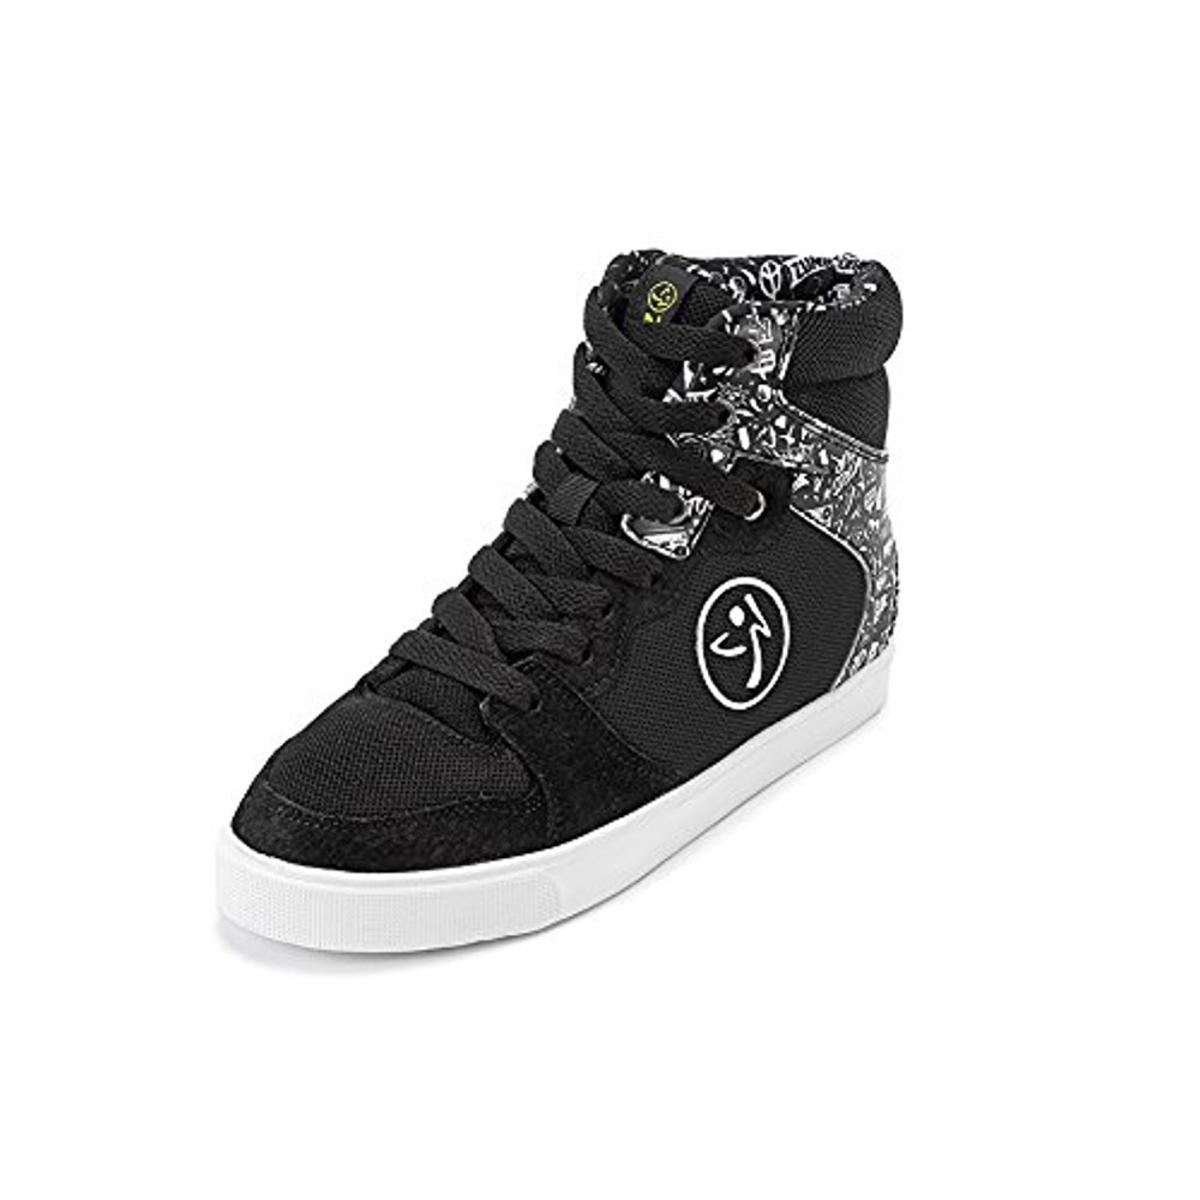 Zumba Womens Crew Street Charge Leather High Top Dance Shoes by Zumba